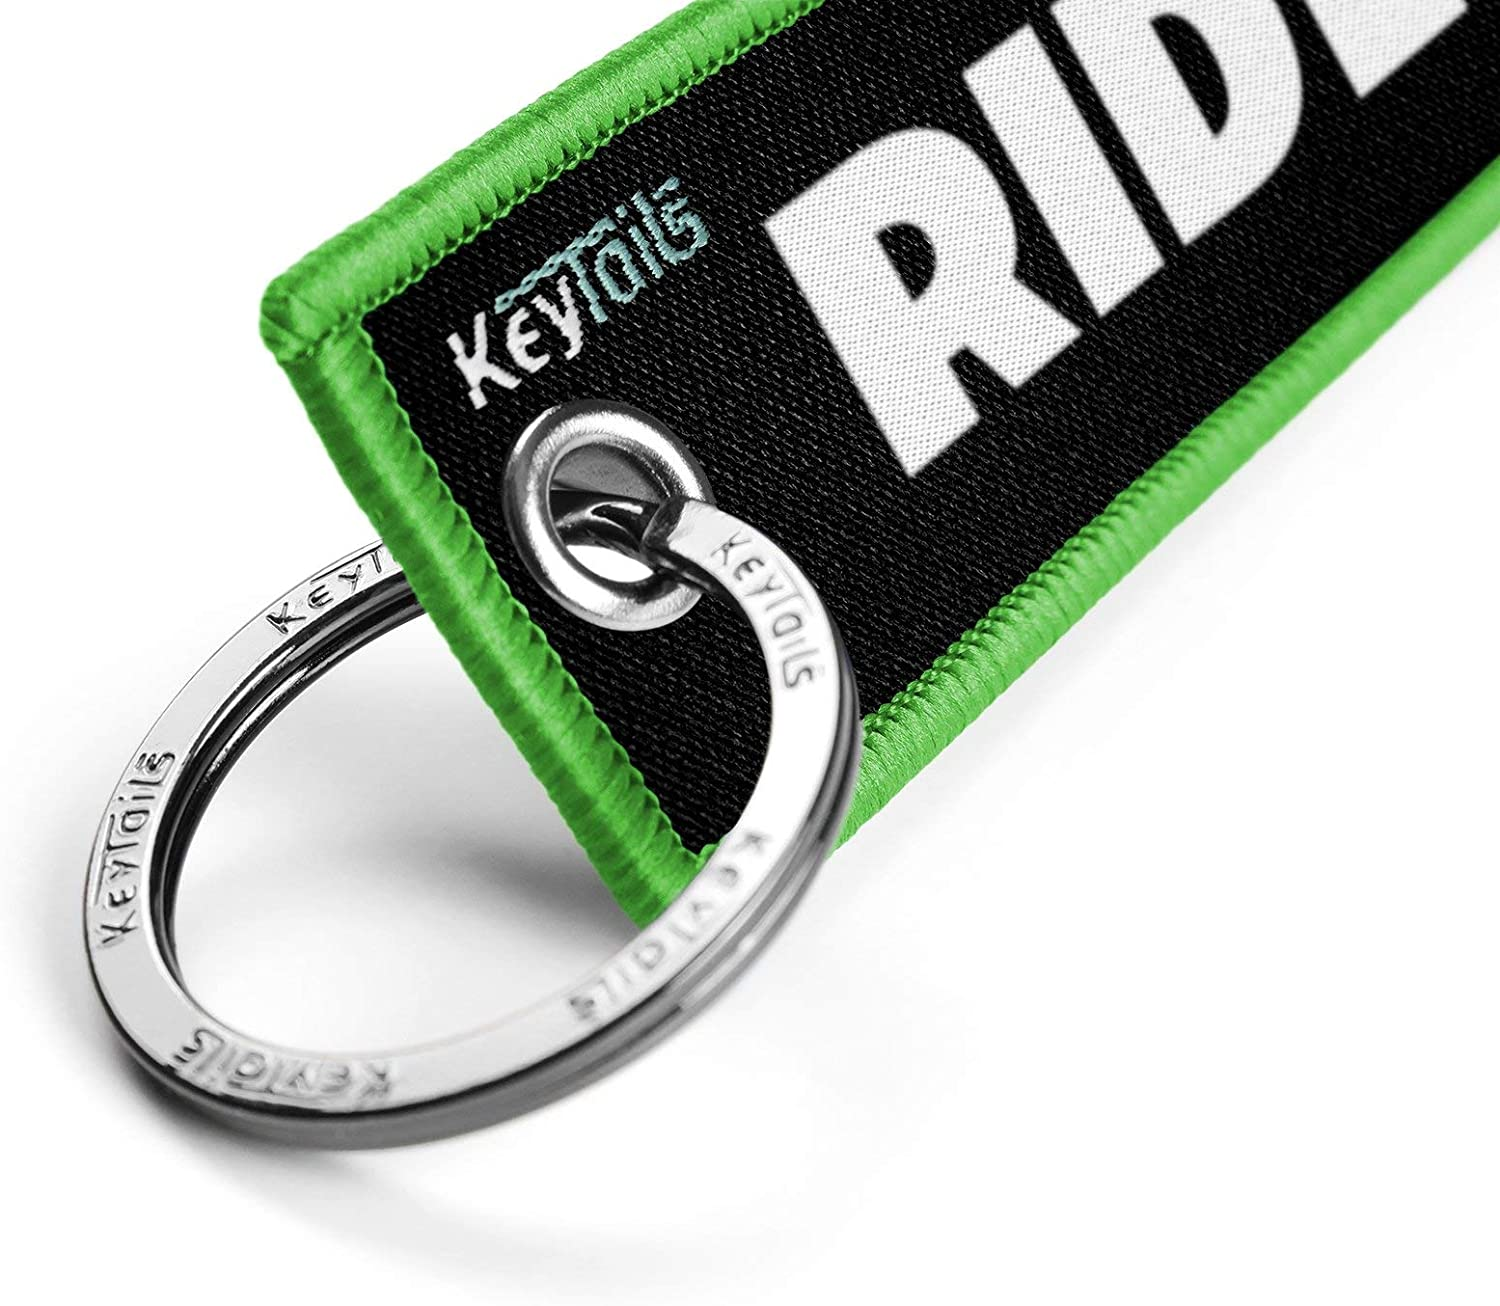 KEYTAILS Keychains Scooter Ride Or Die UTV Premium Quality Key Tag for Motorcycle ATV